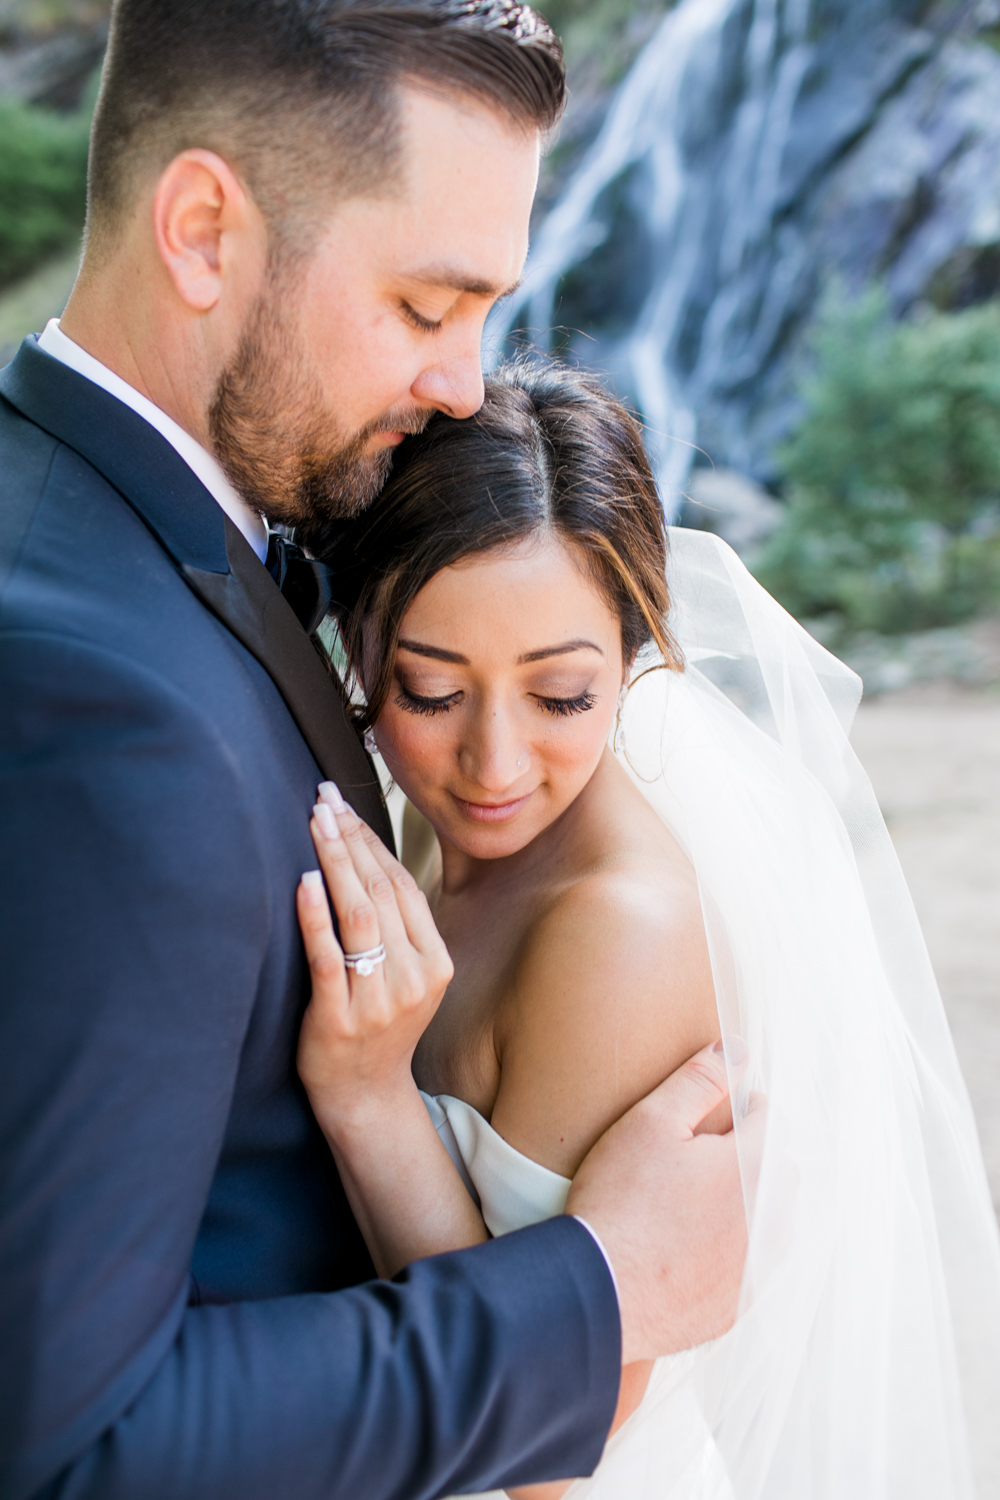 Bride and groom snuggled together with a hint of a waterfall in the background the groom is kissing the bride's head